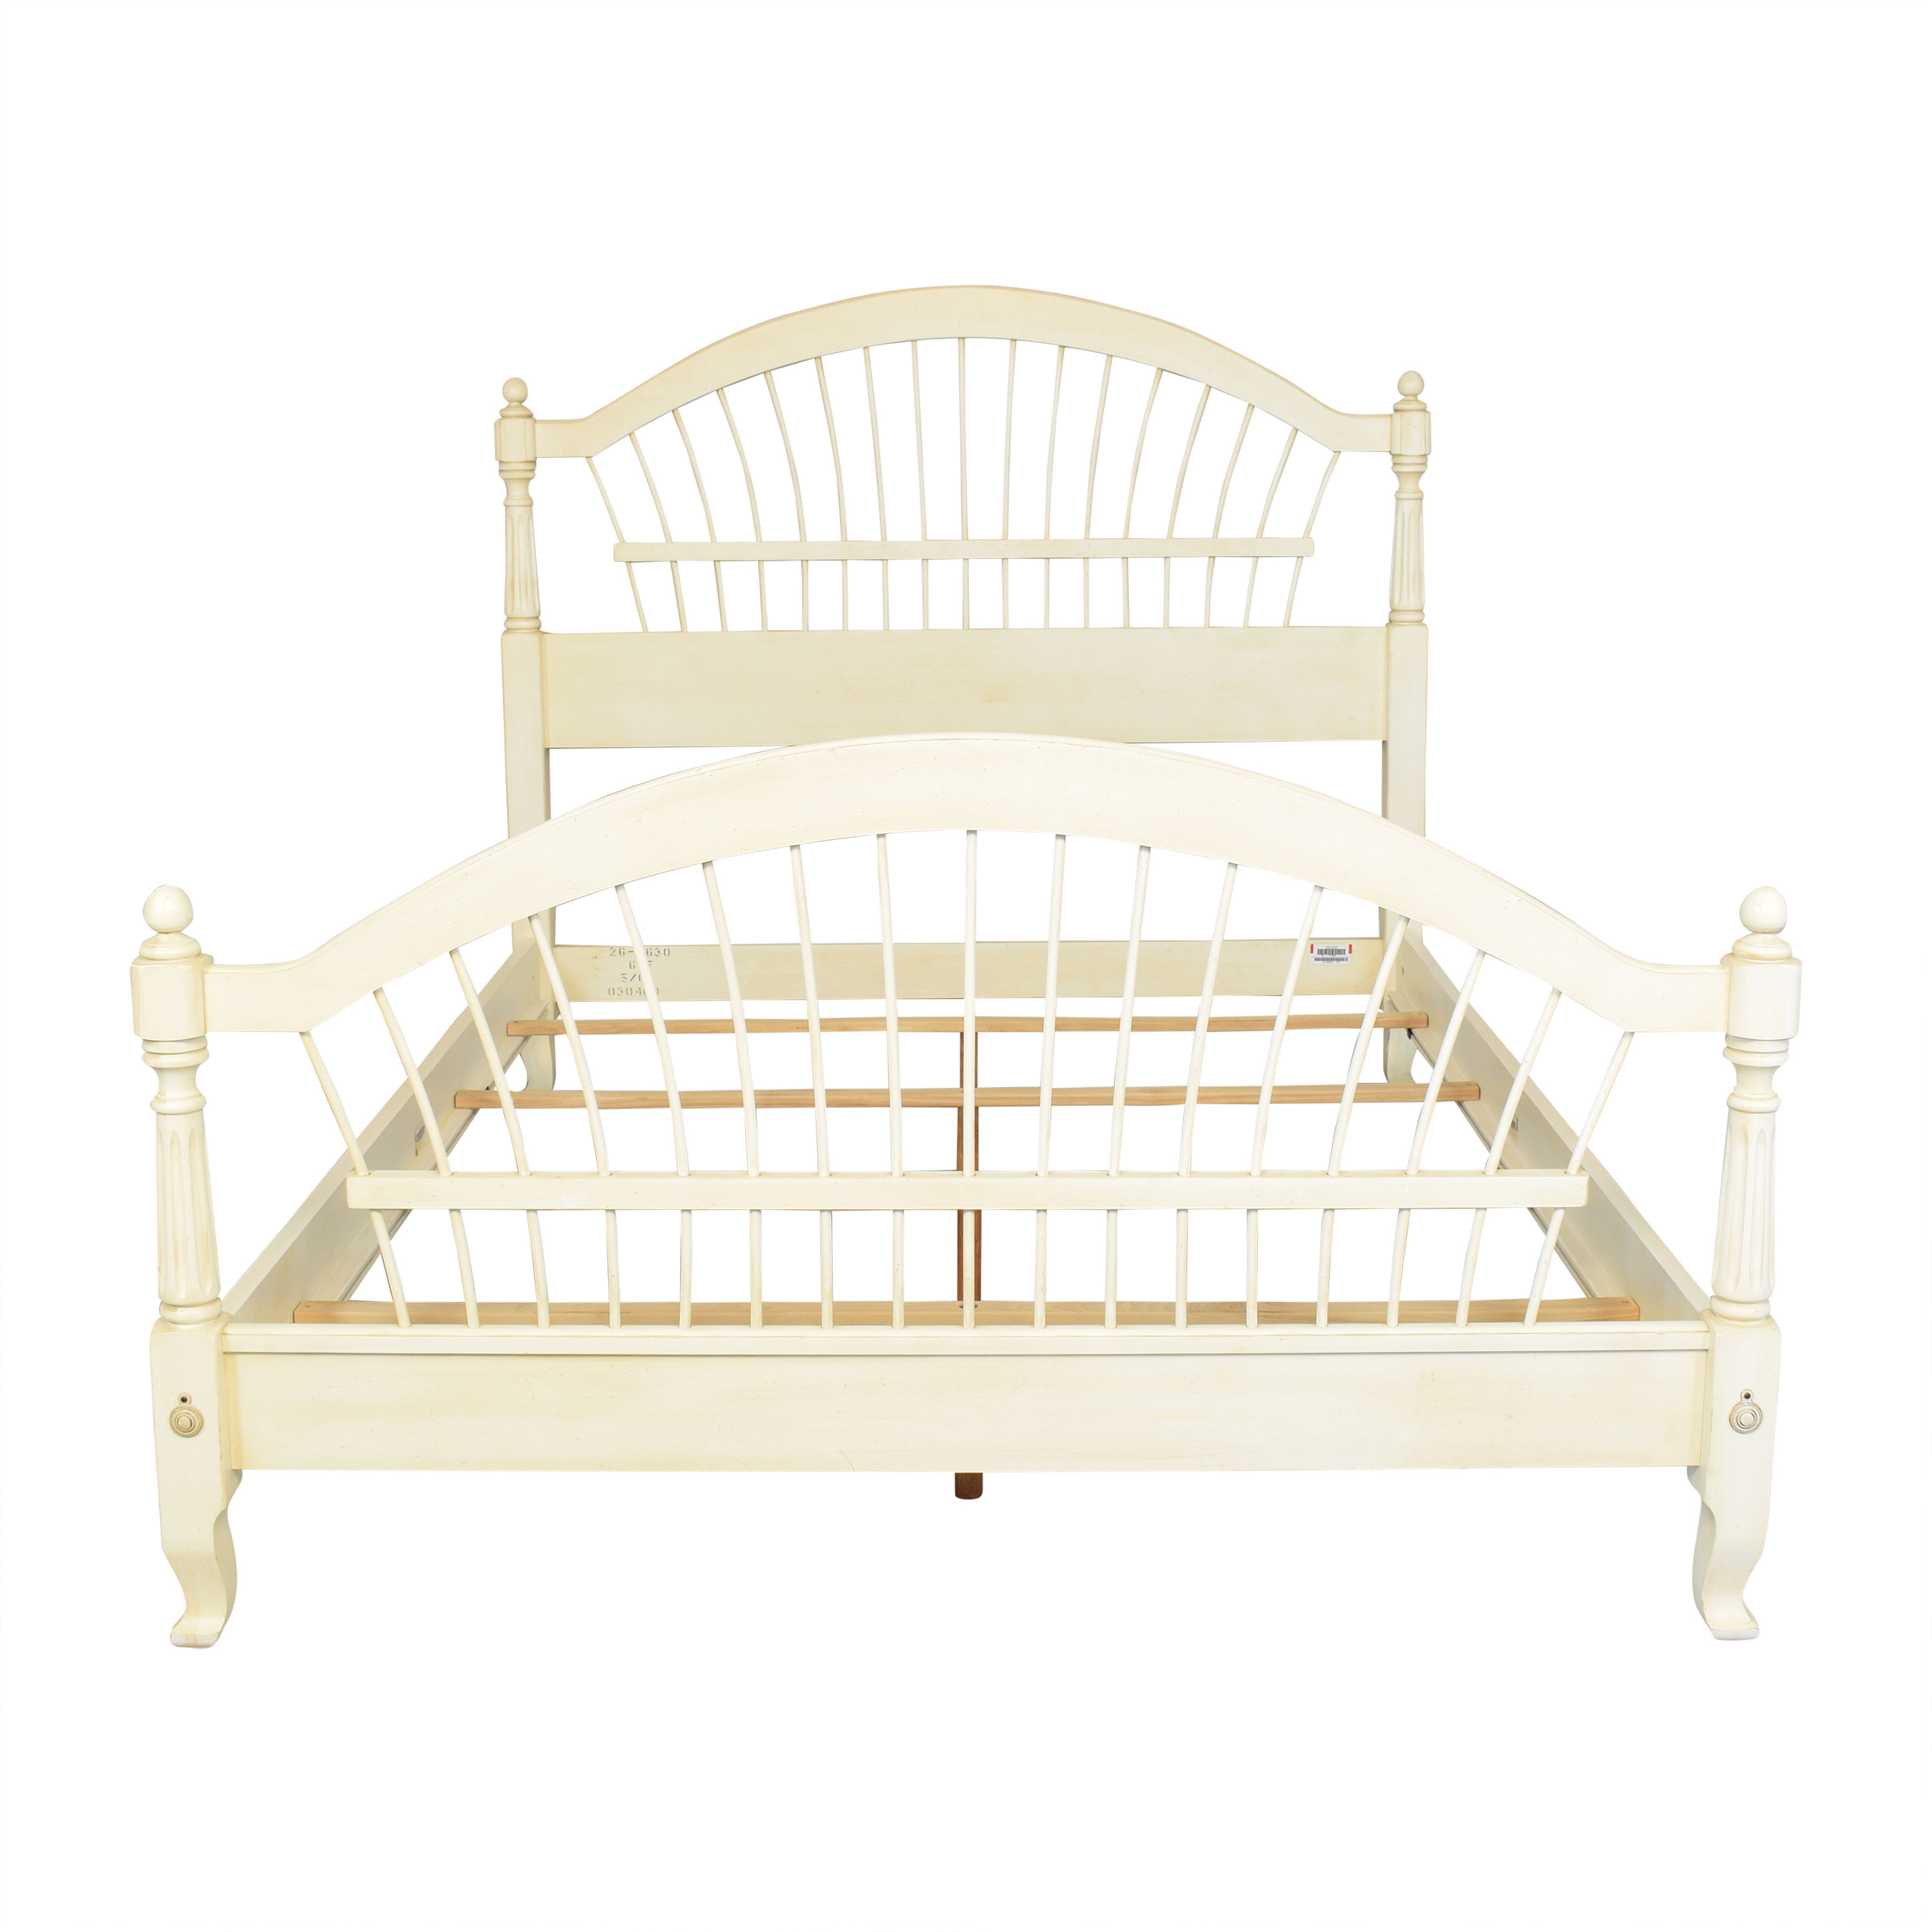 Ethan Allen Ethan Allen Country French Queen Bed off white